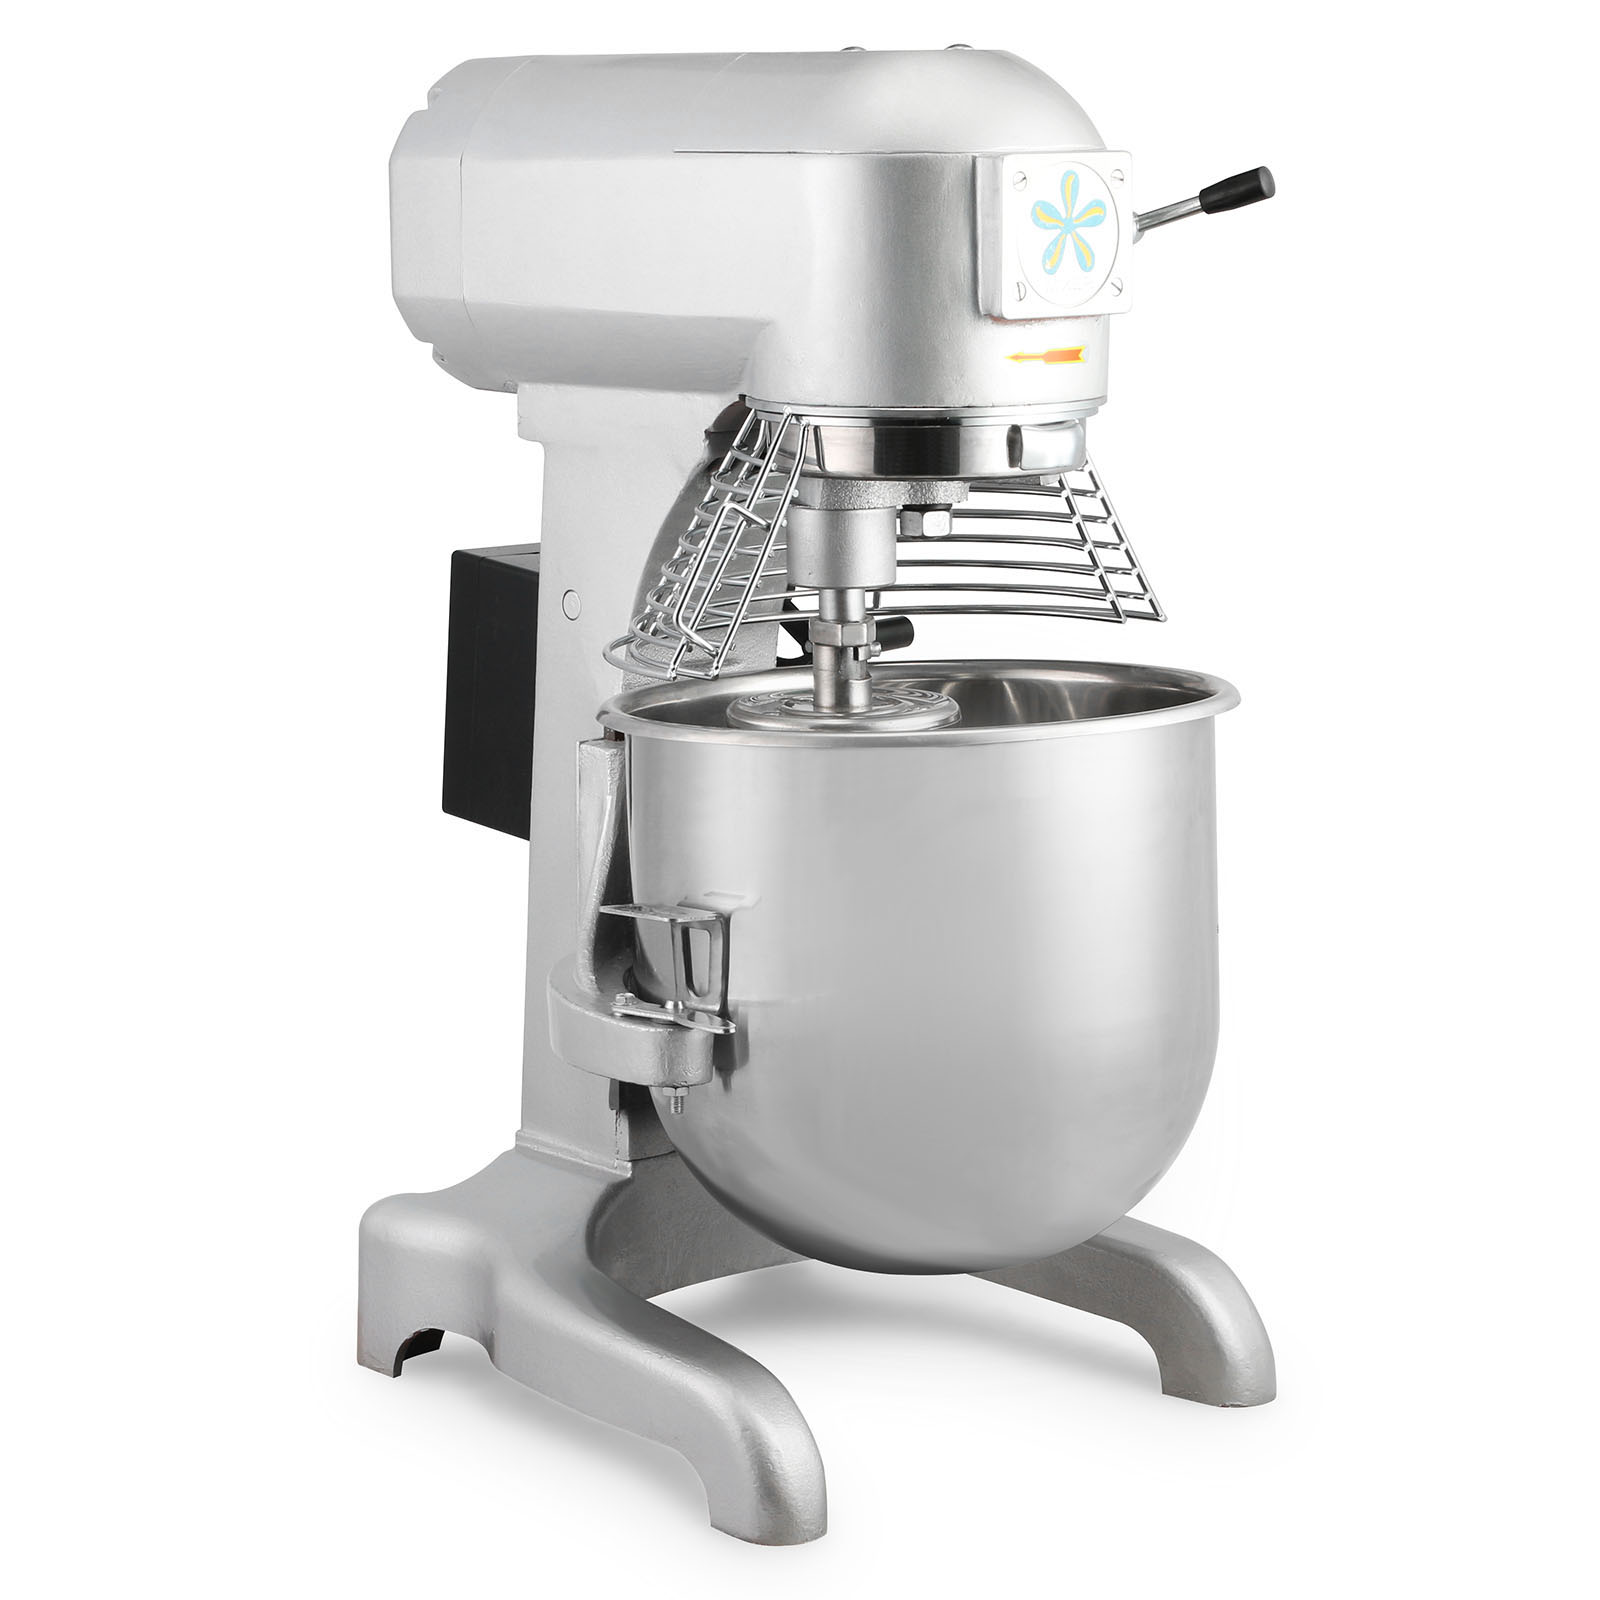 Food Dough Stand Mixer Mixing Tool Stainless Steel Bowl